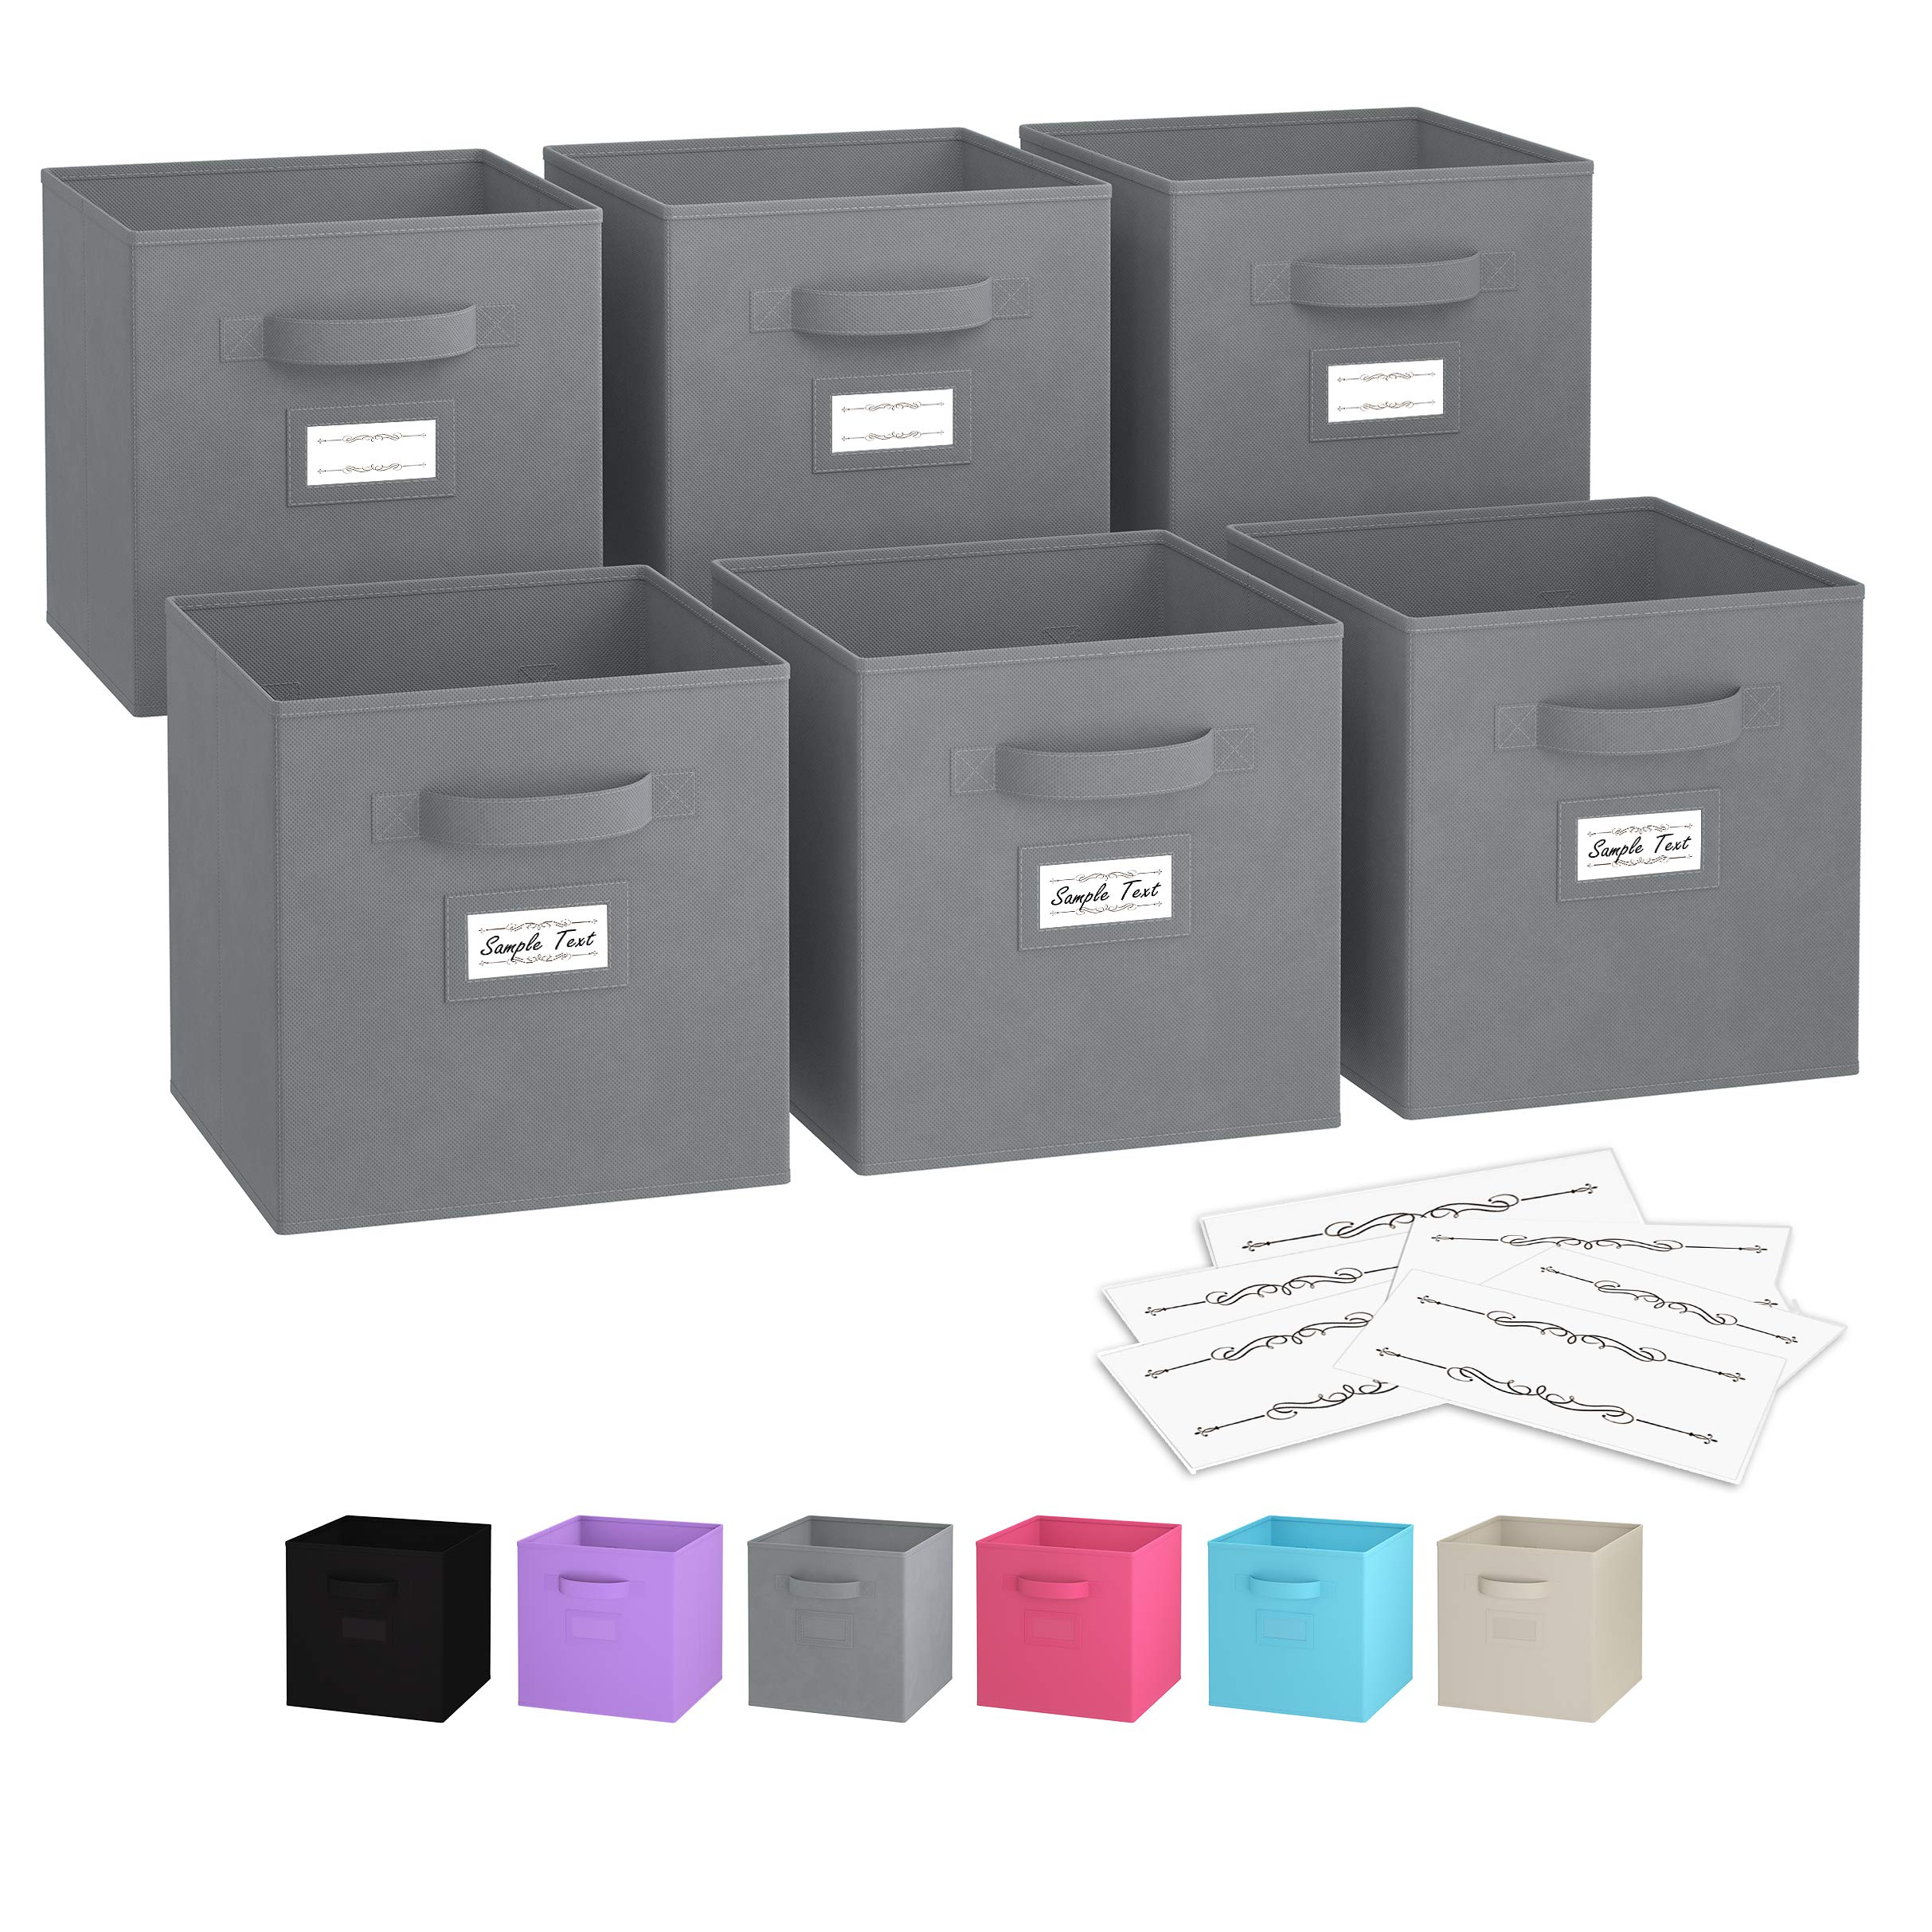 Royexe - Storage Cubes - (Set of 6) Storage Baskets | Features Dual Handles & Label Window with 10 Label Cards | Cube Storage Bins | Foldable Fabric Closet Shelf Organizer (Grey)